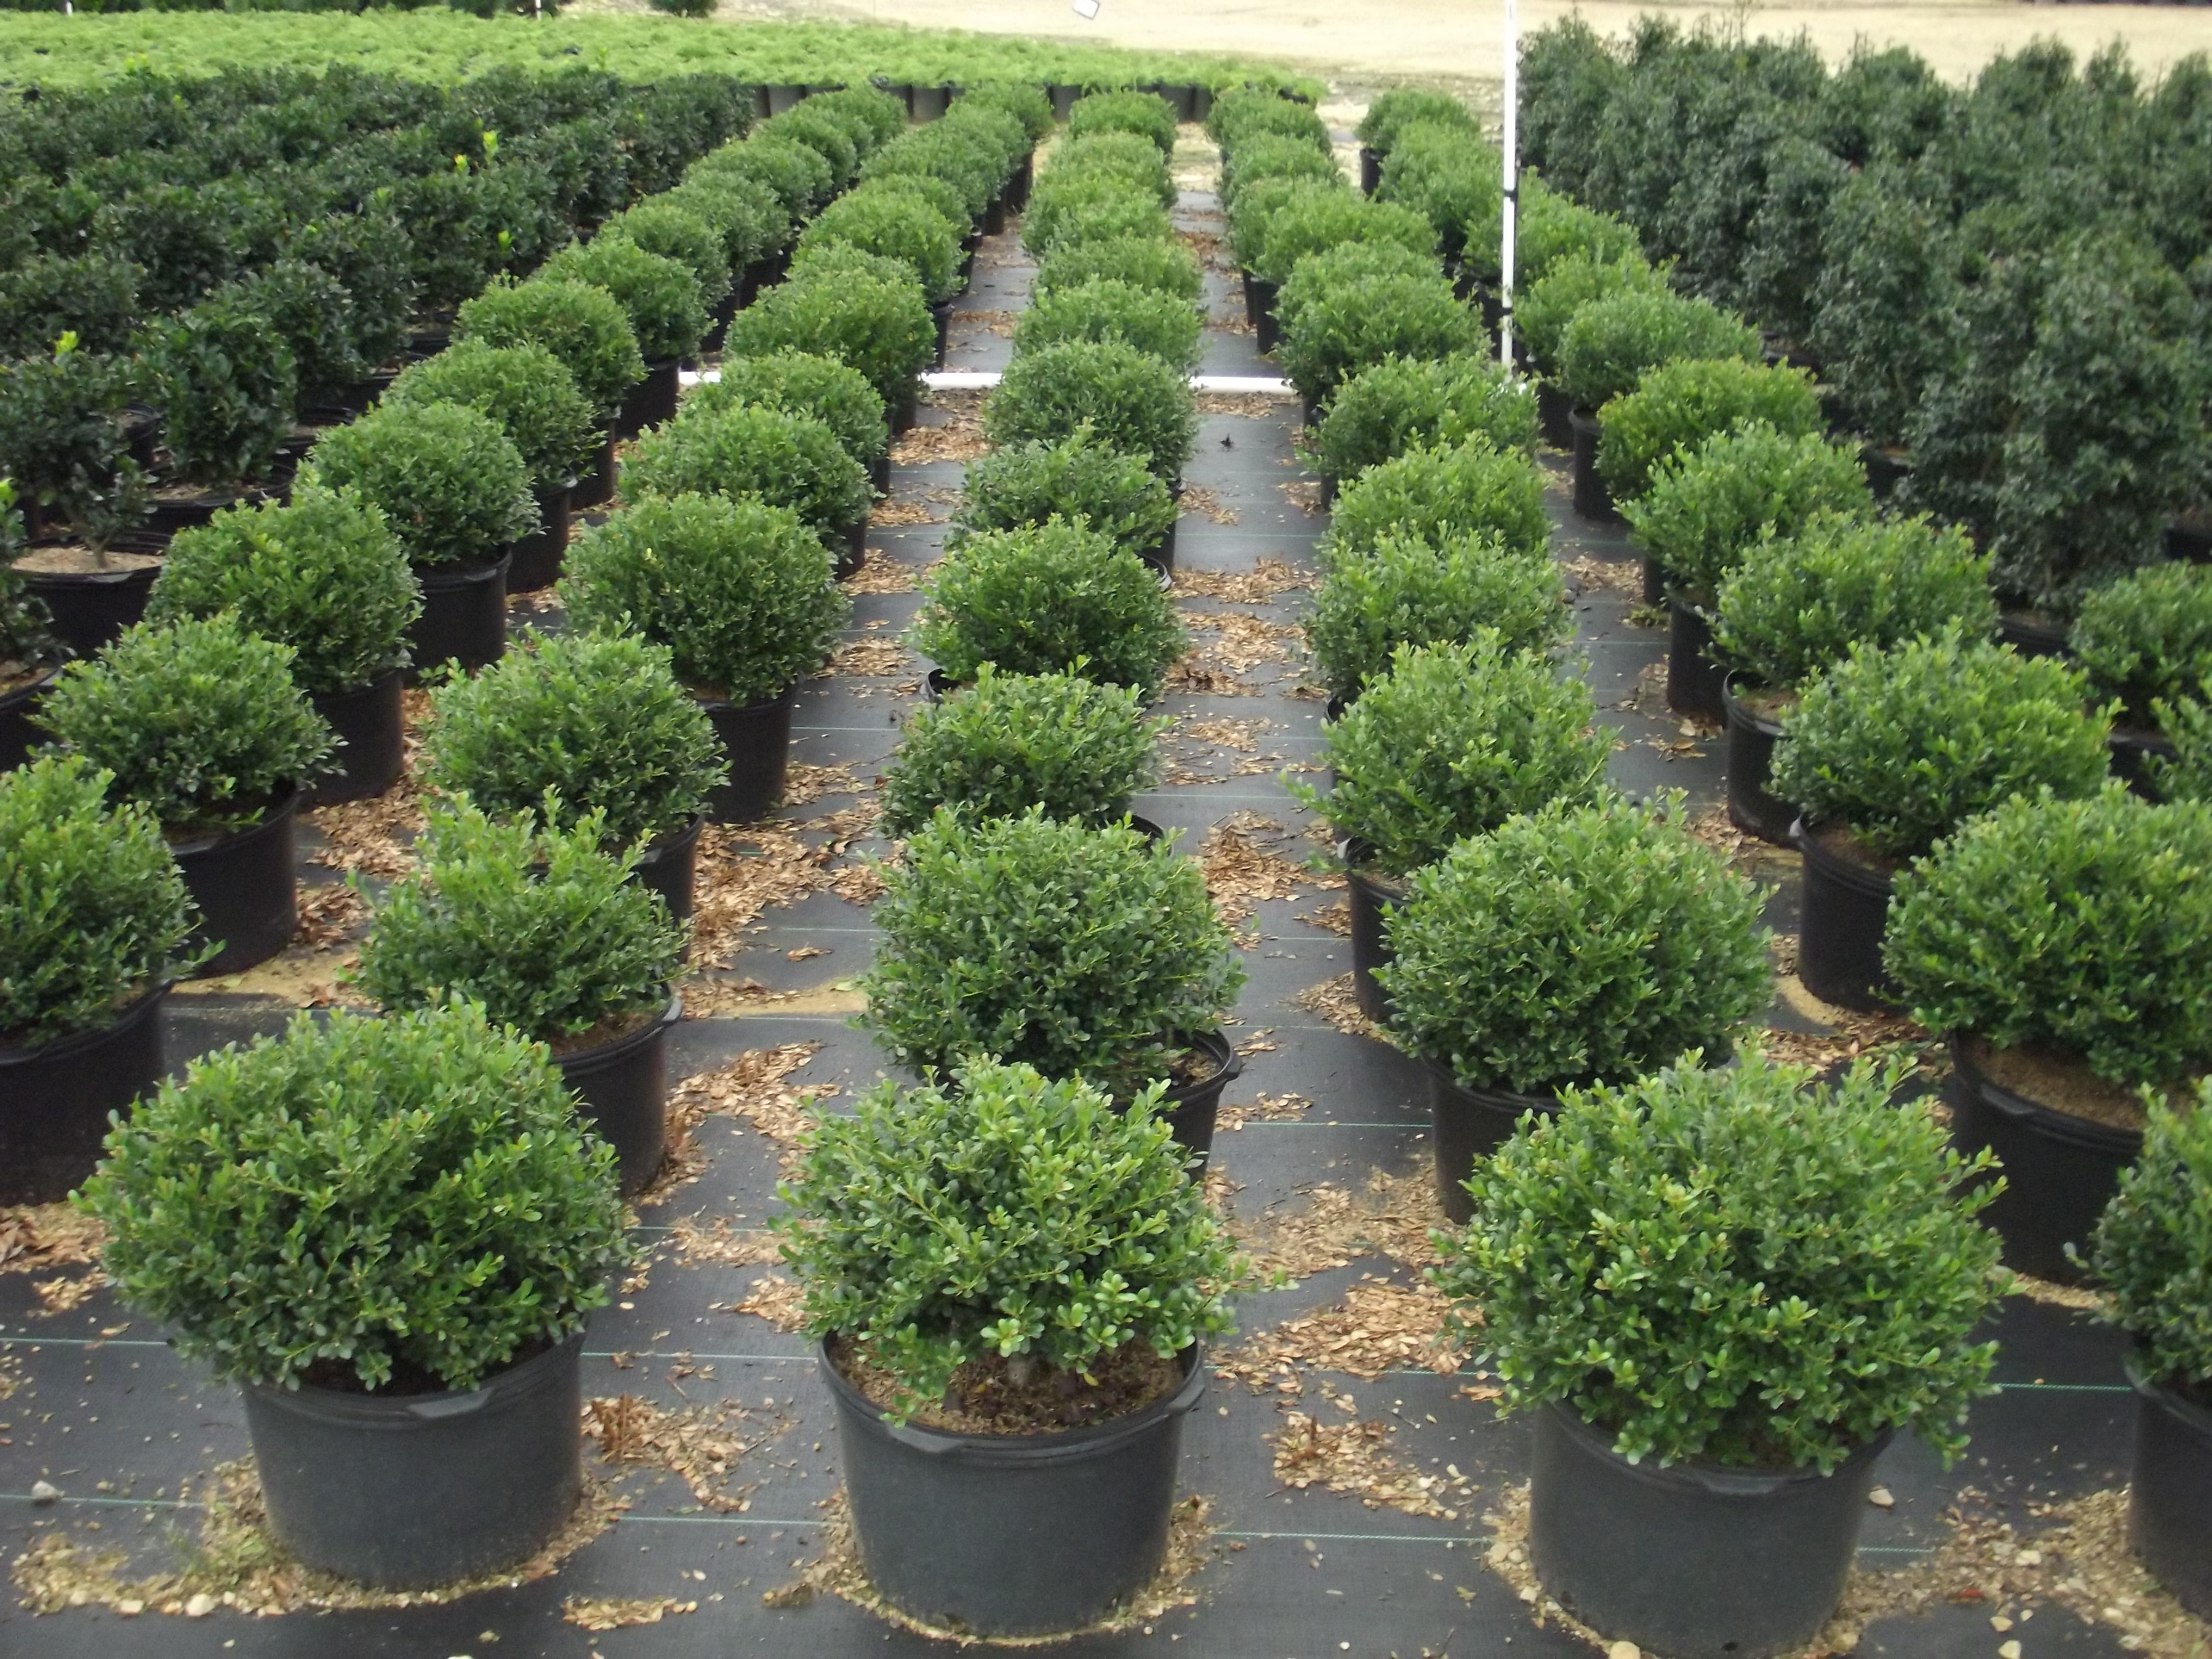 loews nursery bridgeton nj ilex compacta 5c